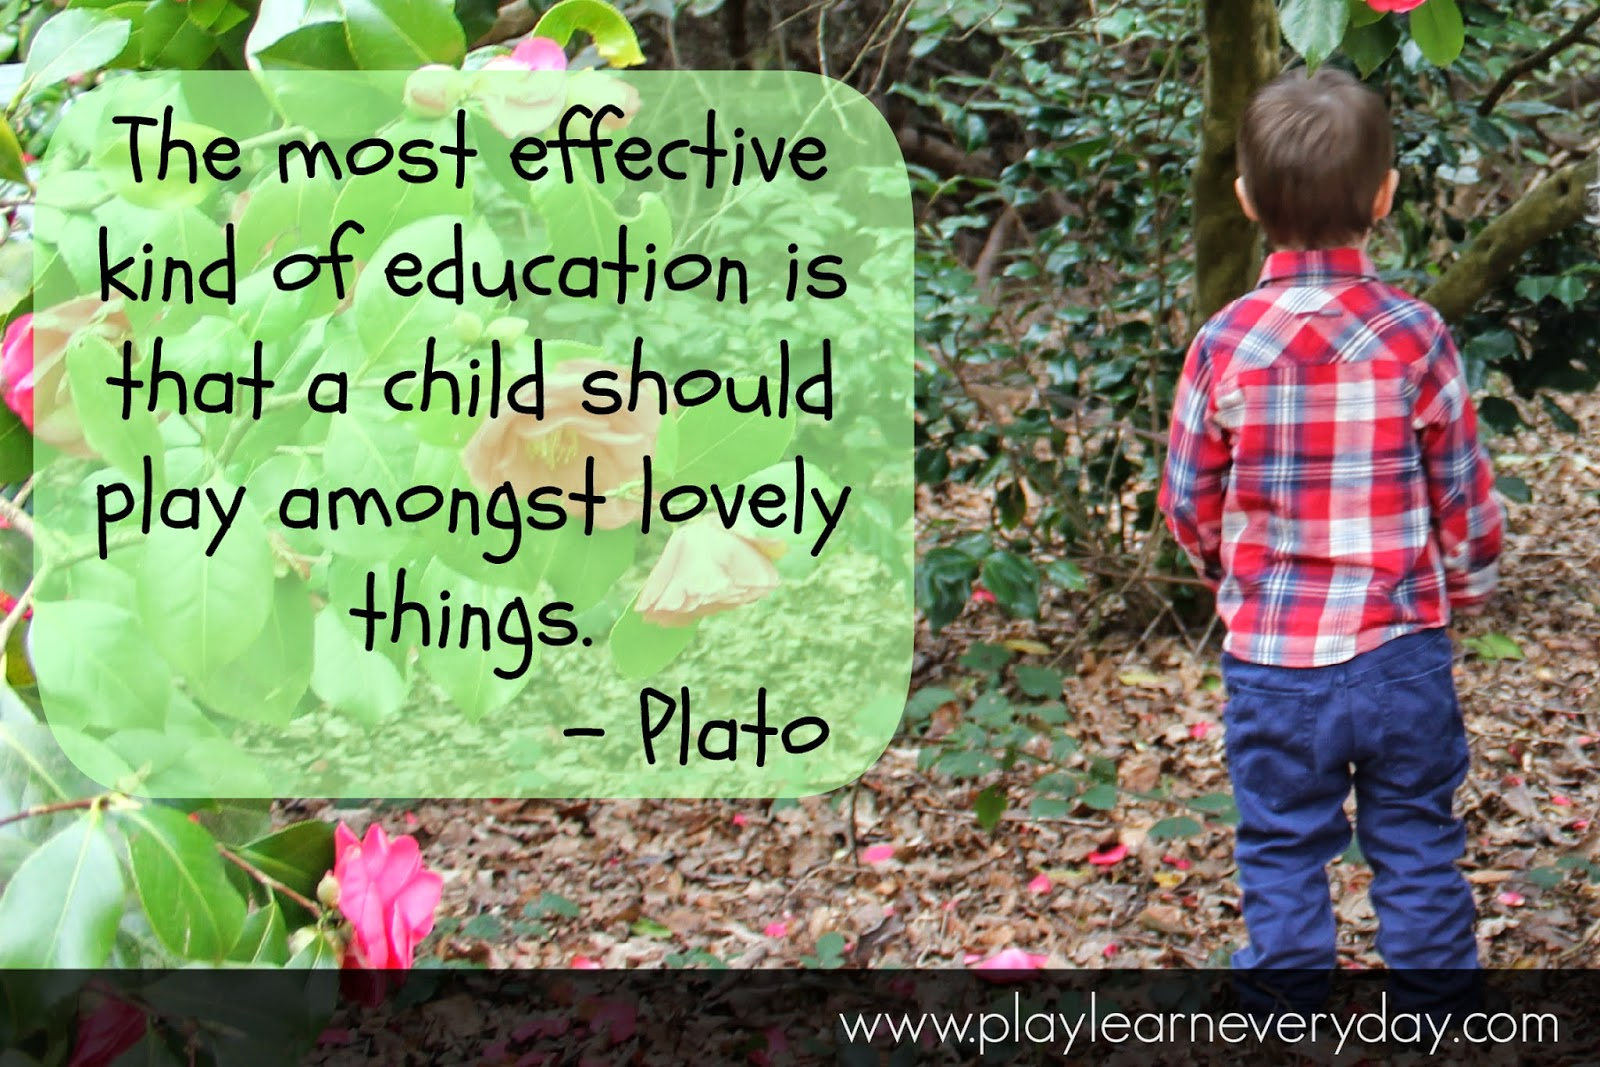 play and learning in childrens education Play has been an important part of teacher preparation in early childhood  education because preschool and primary children learn through.